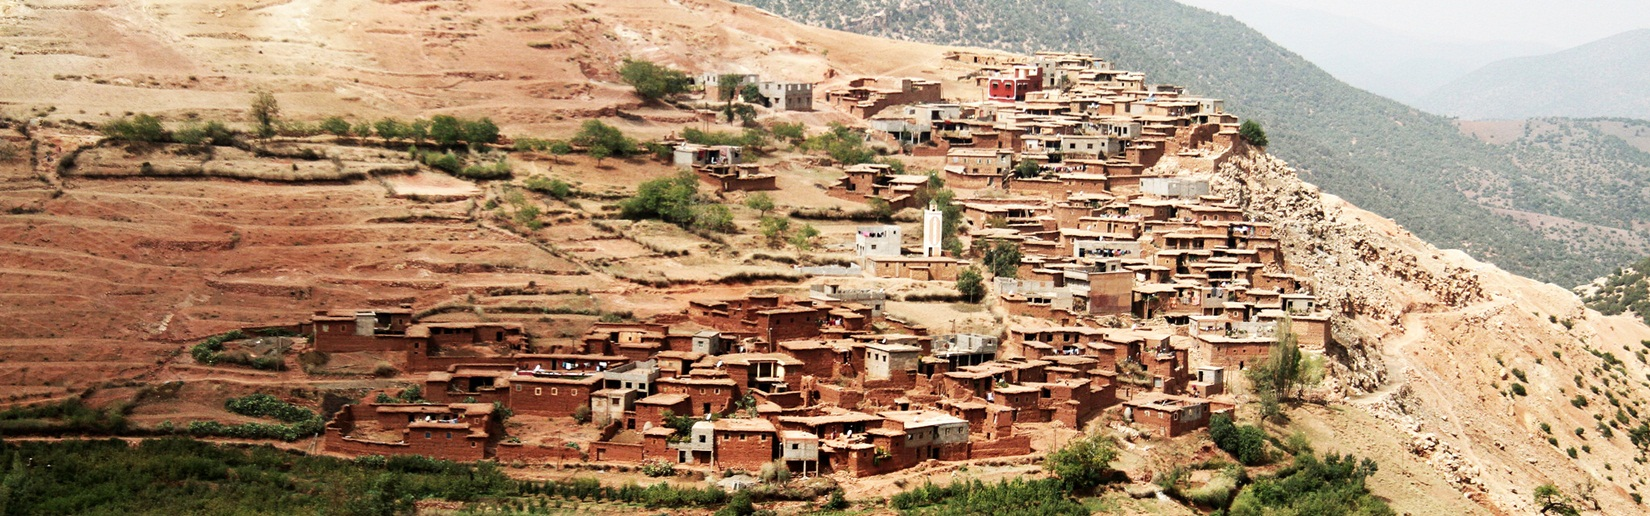 Morocco <span>High Atlas</span> Berber Villages